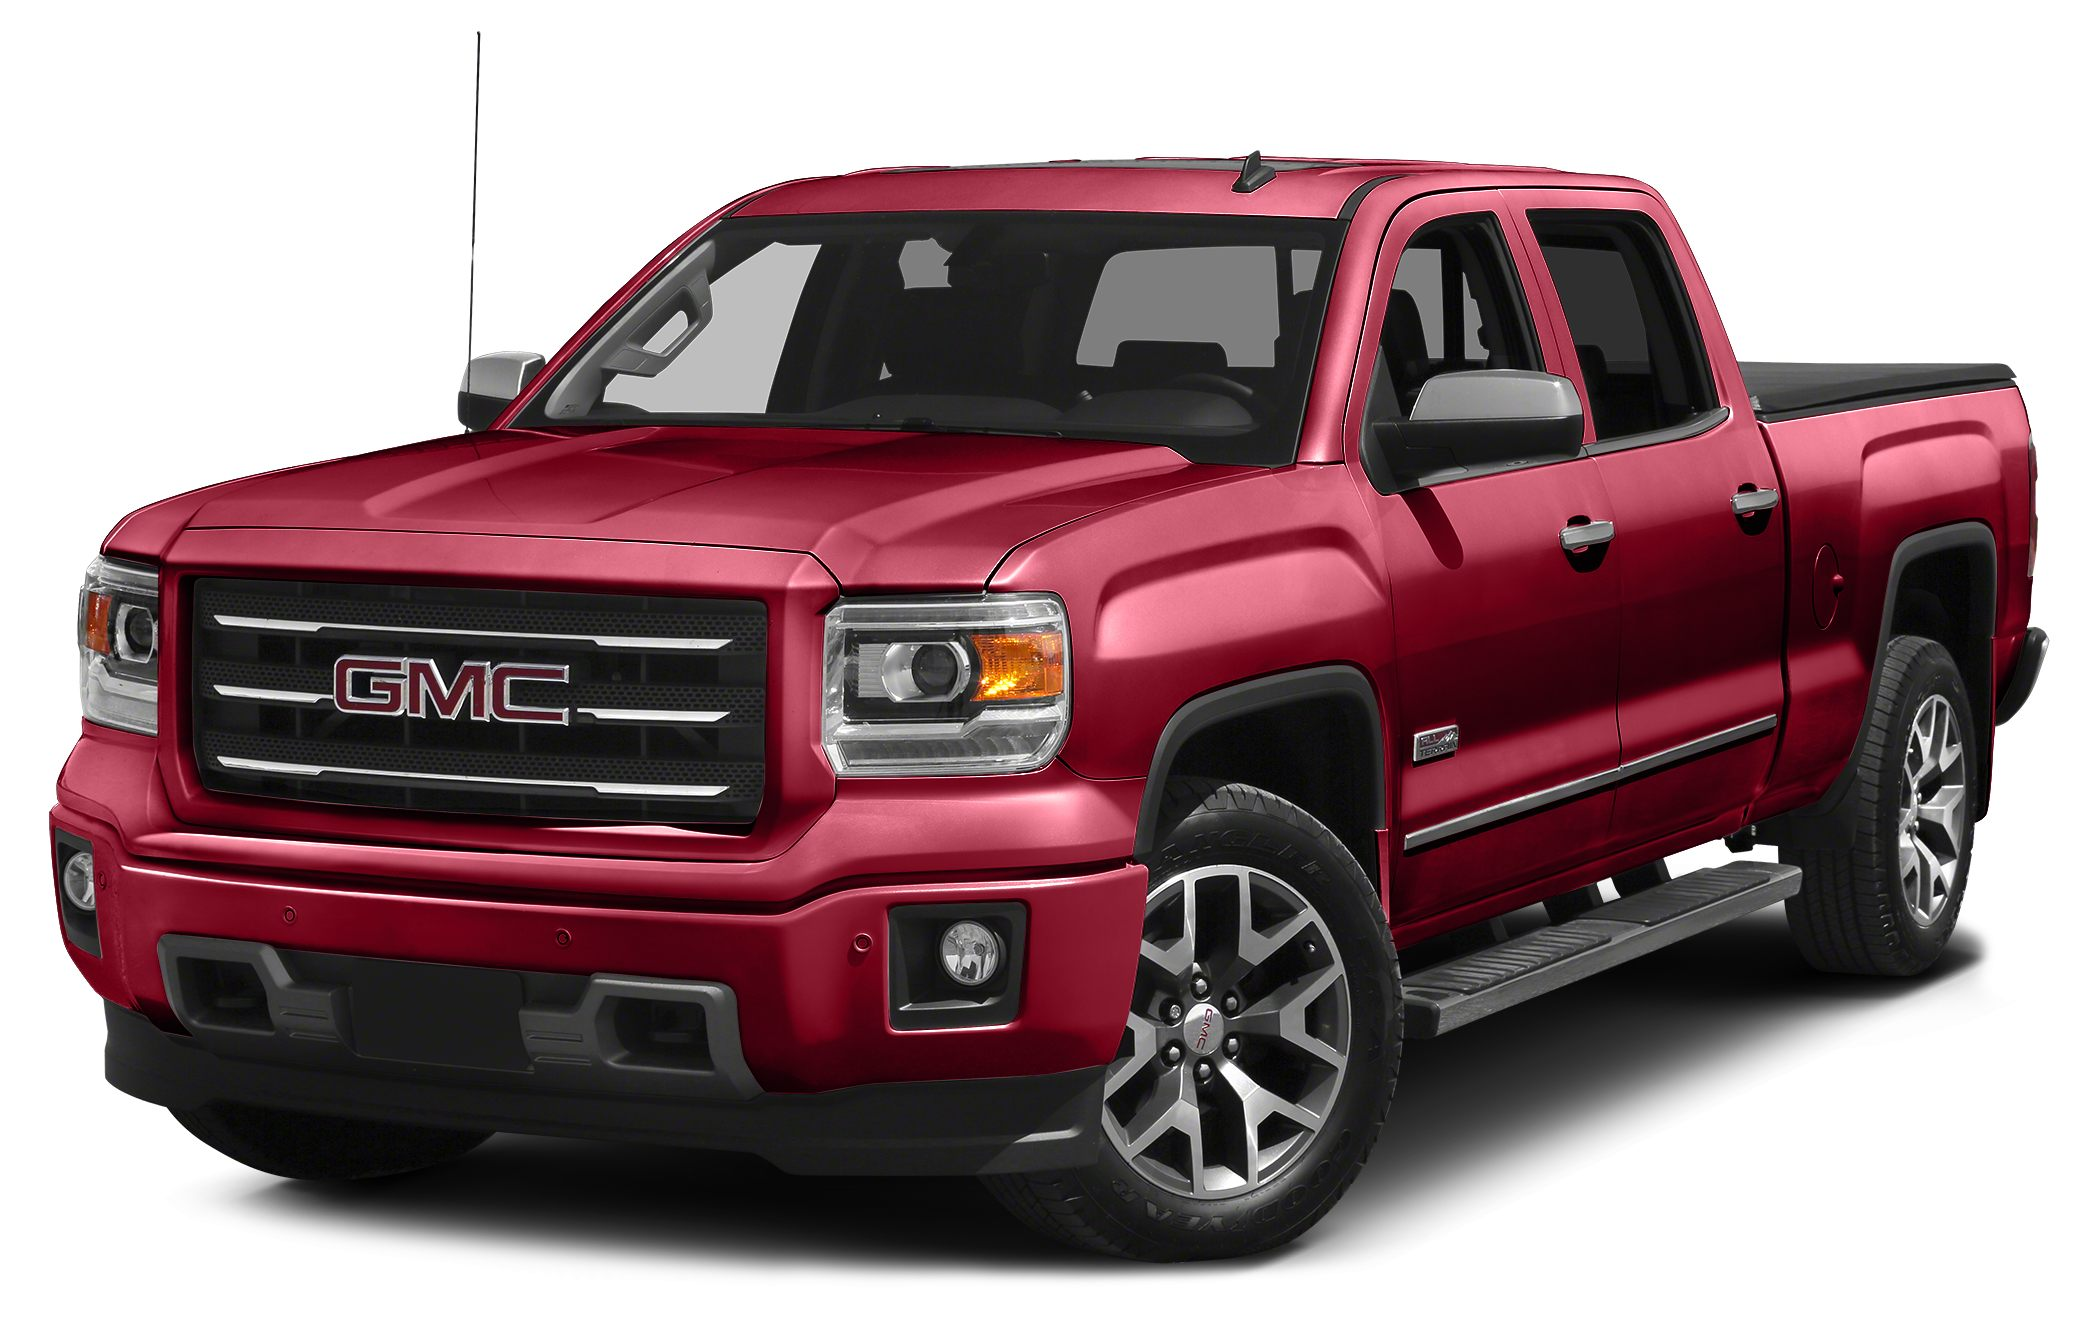 2014 GMC Sierra 1500 SLT CARFAX 1-Owner GREAT MILES 30010 EPA 20 MPG Hwy14 MPG City Navigatio